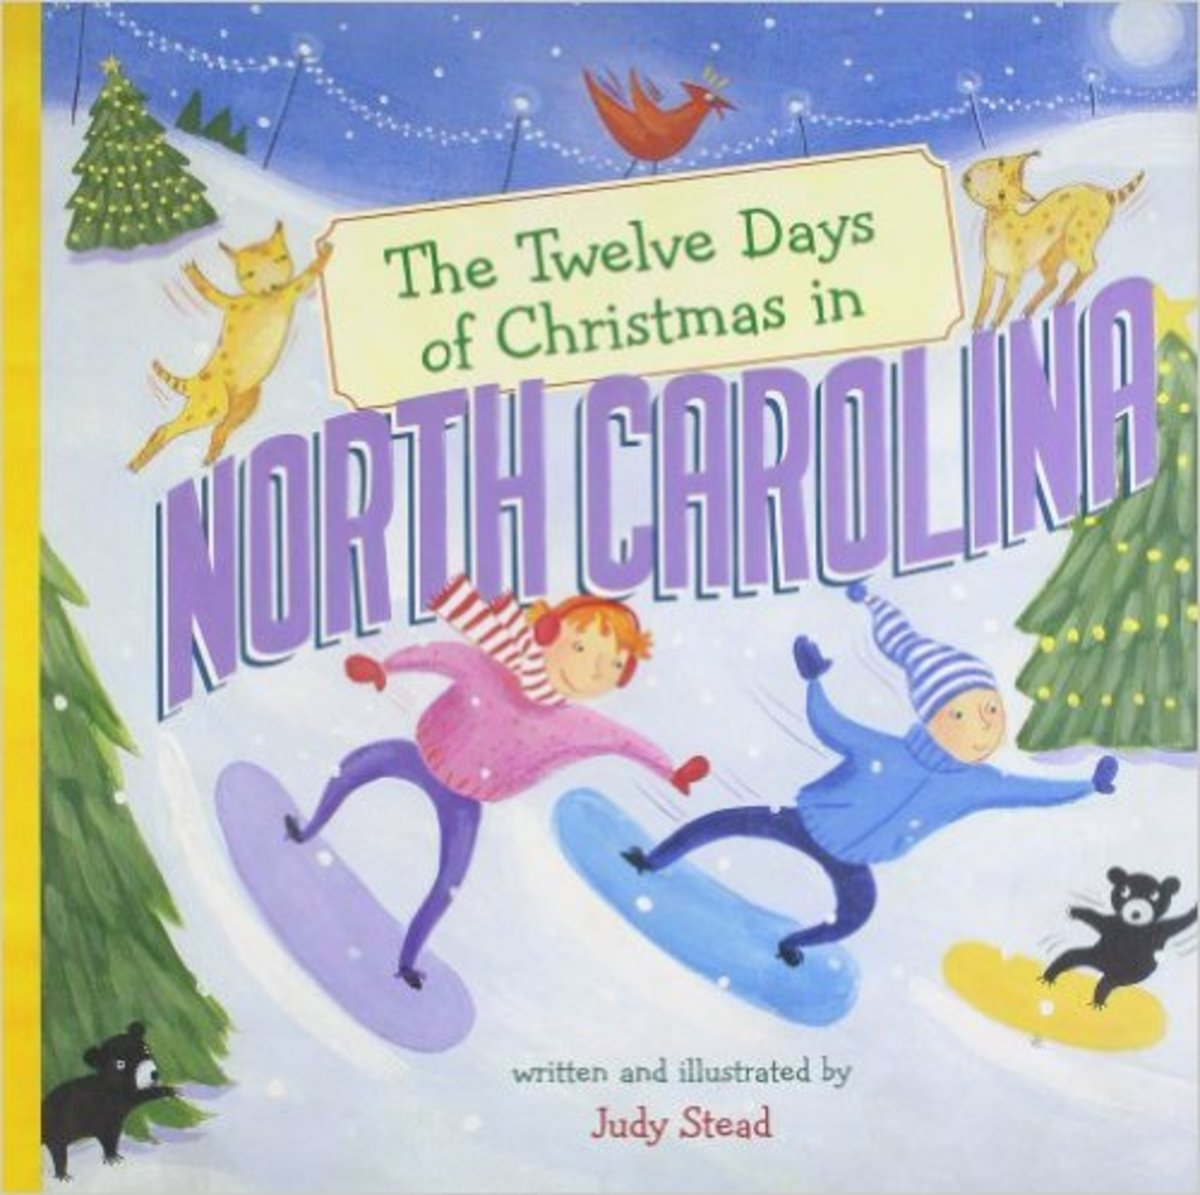 The Twelve Days of Christmas in North Carolina (The Twelve Days of Christmas in America) by Judy Stead